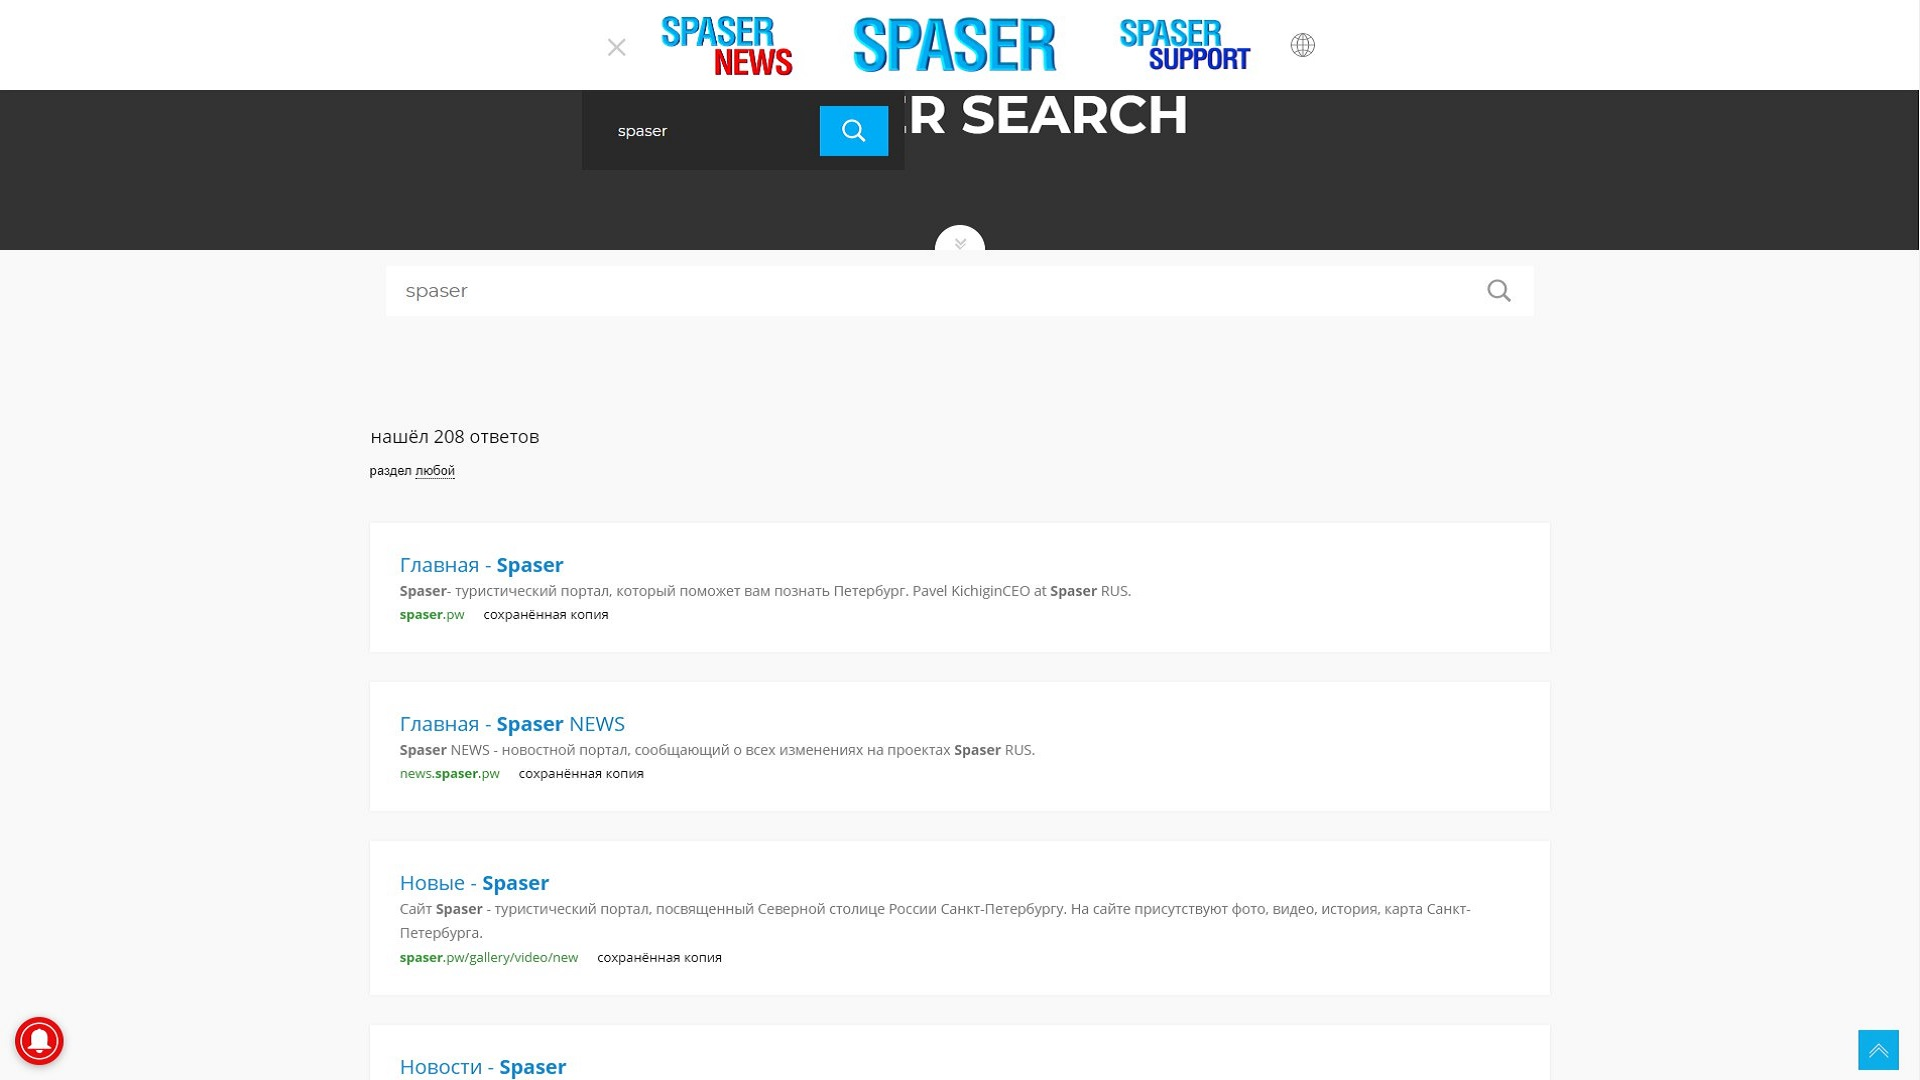 Spaser Search